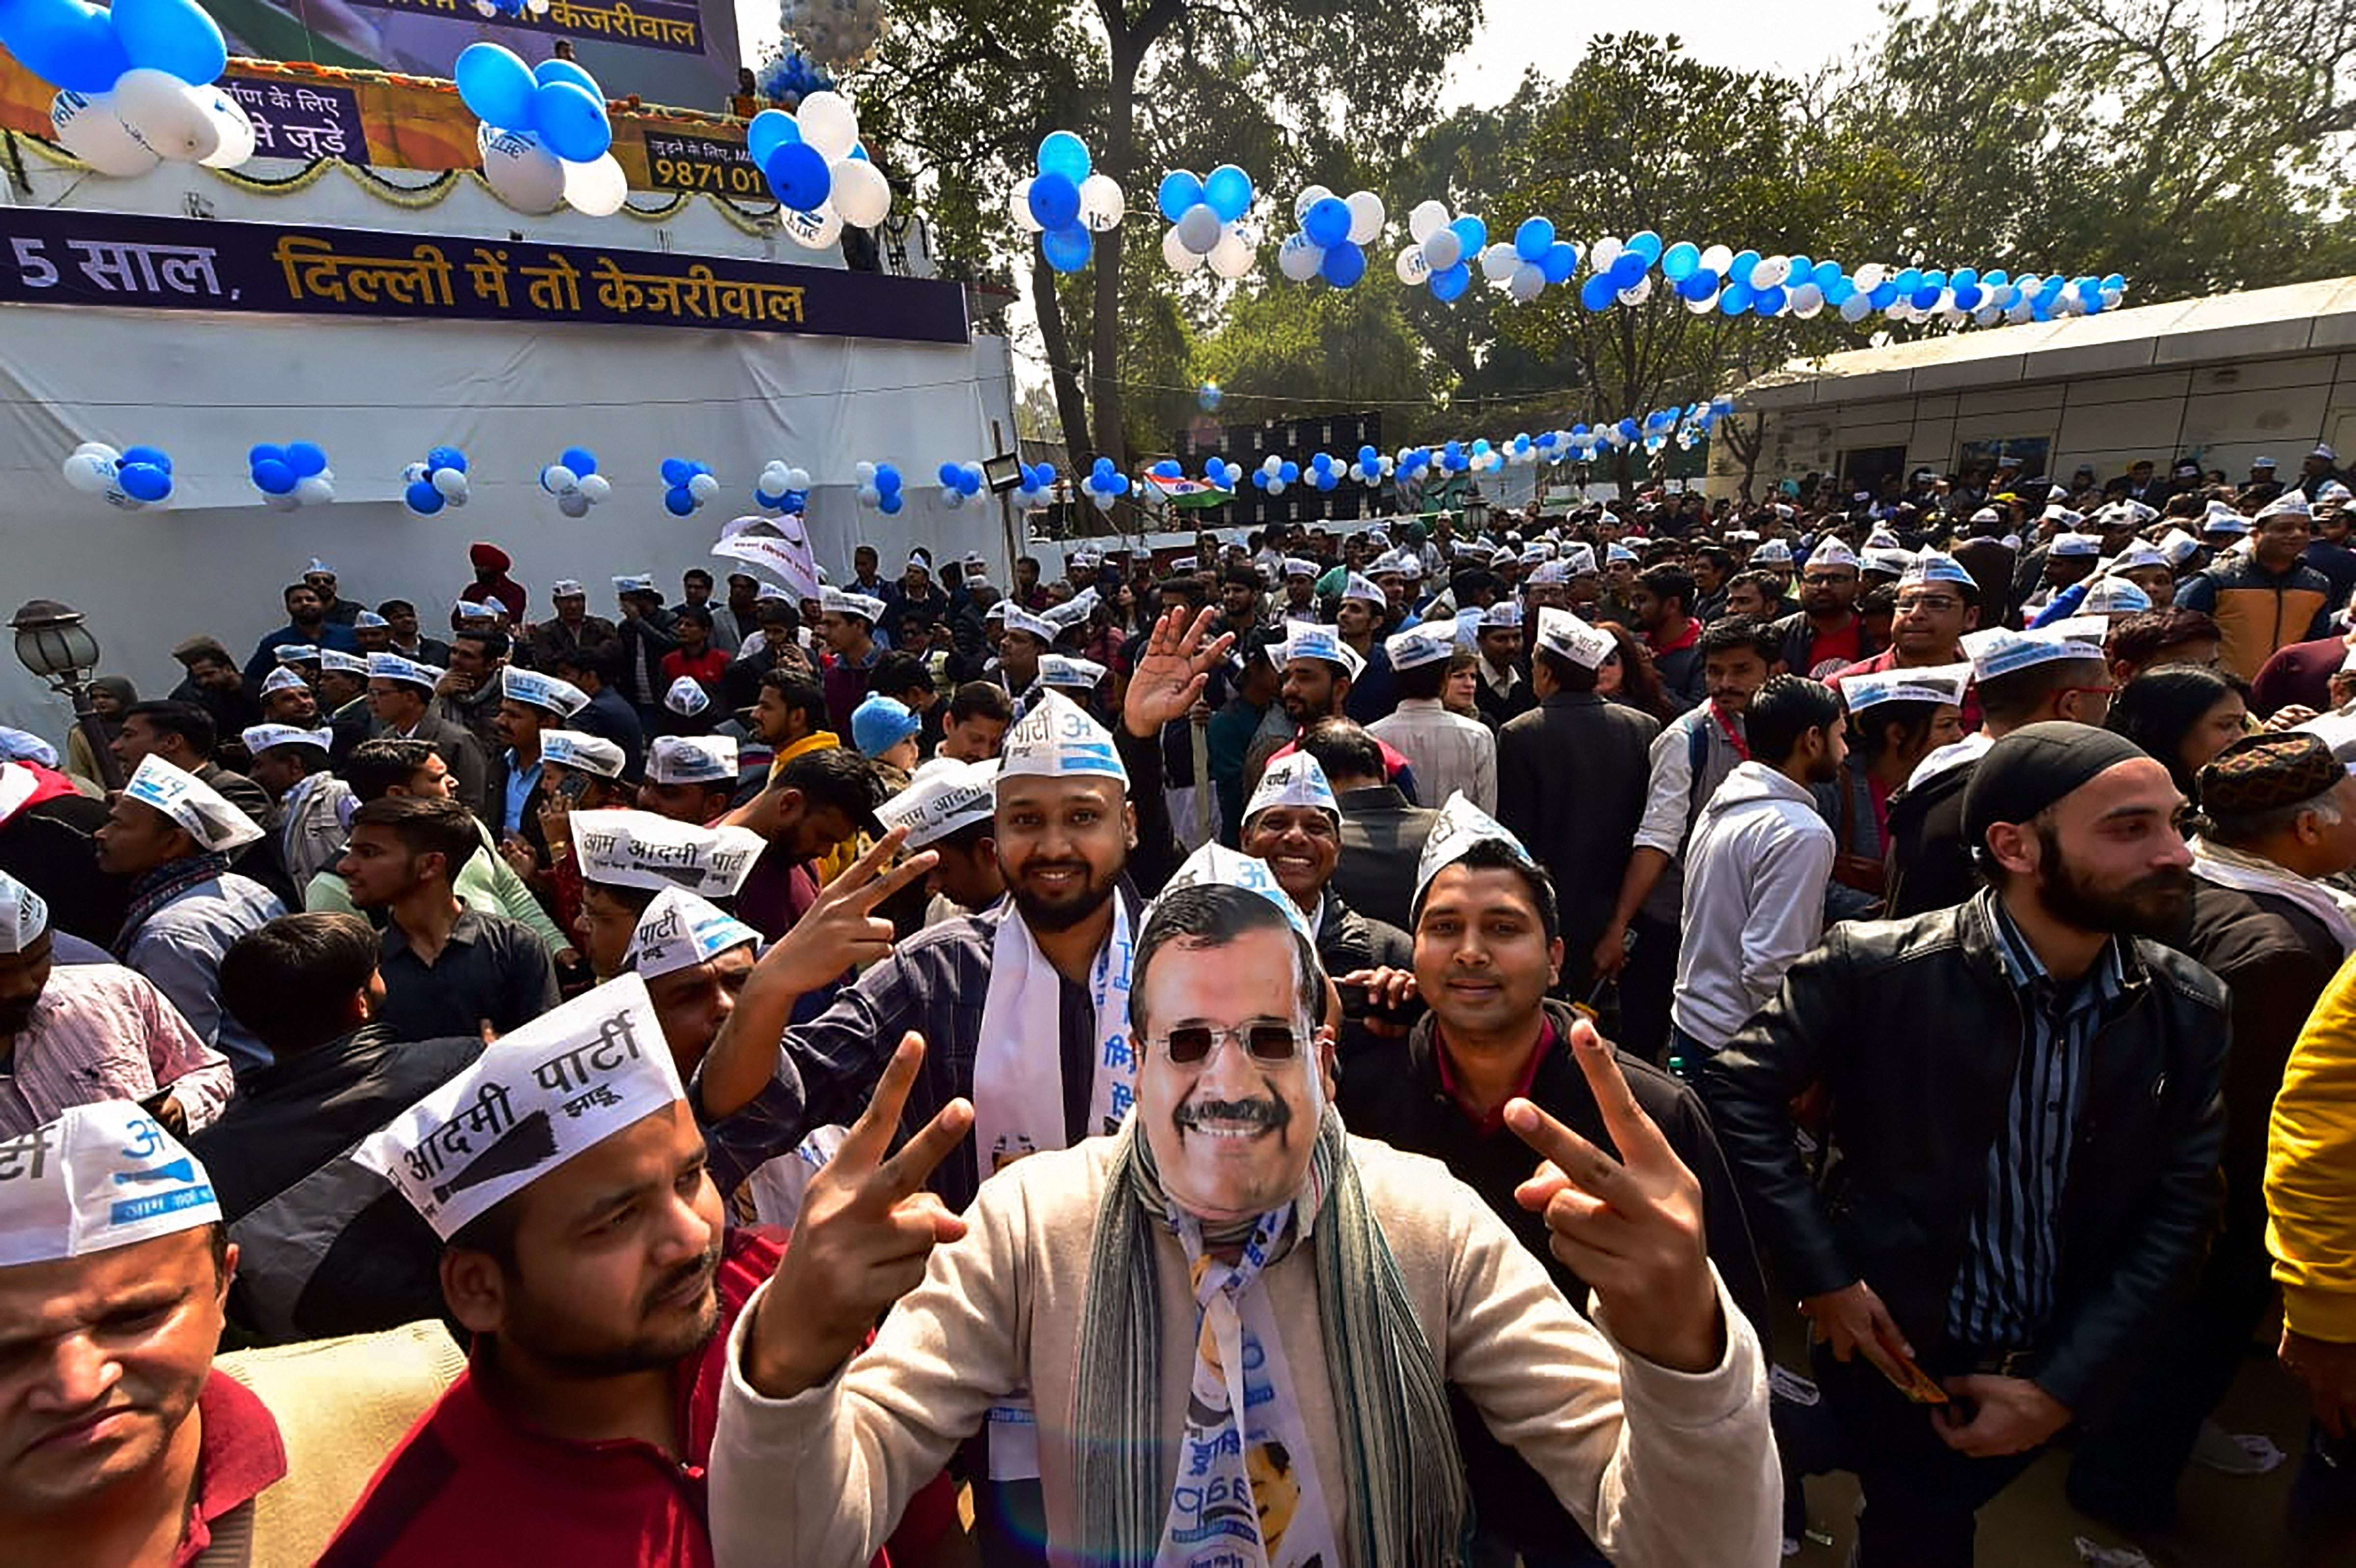 An Aam Aadmi Party worker, dressed as party chief Arvind Kejriwal, celebrates along with others the party's success in the Delhi Assembly polls, at party headquarters in New Delhi, Tuesday, February 11, 2020.